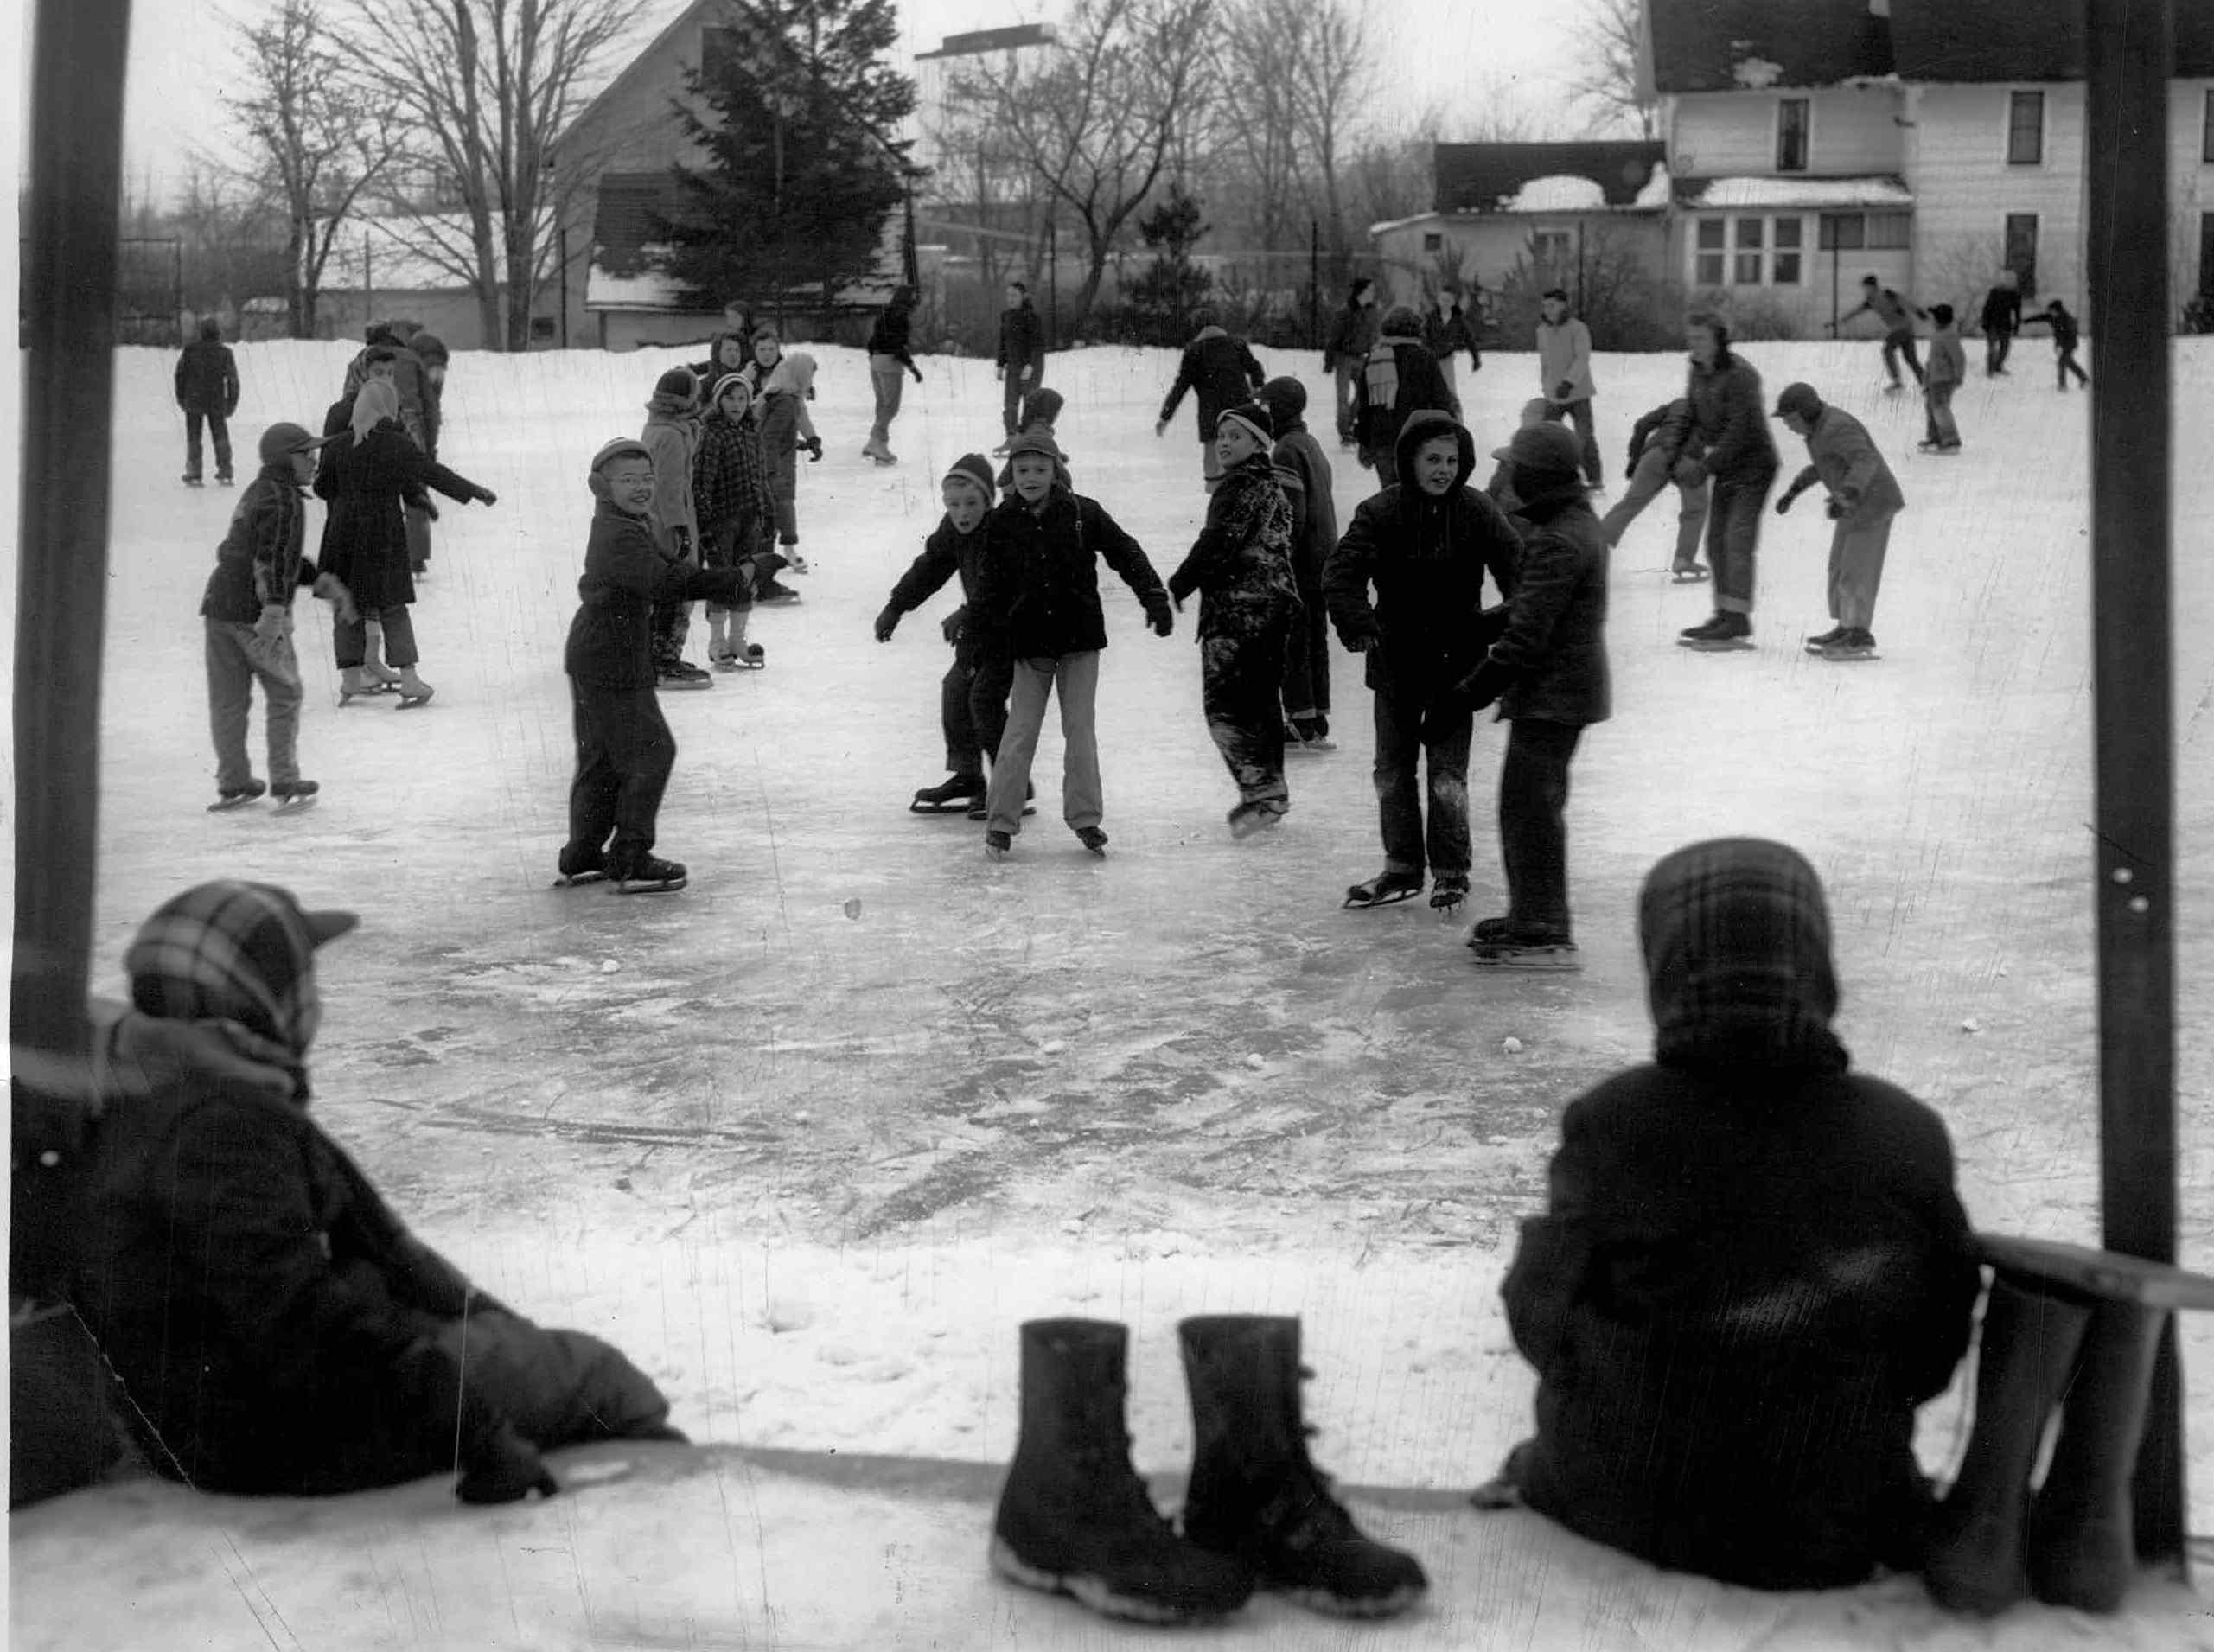 In this photo from 1956, skaters make their way around an ice rink made for community use by West Webster firemen.